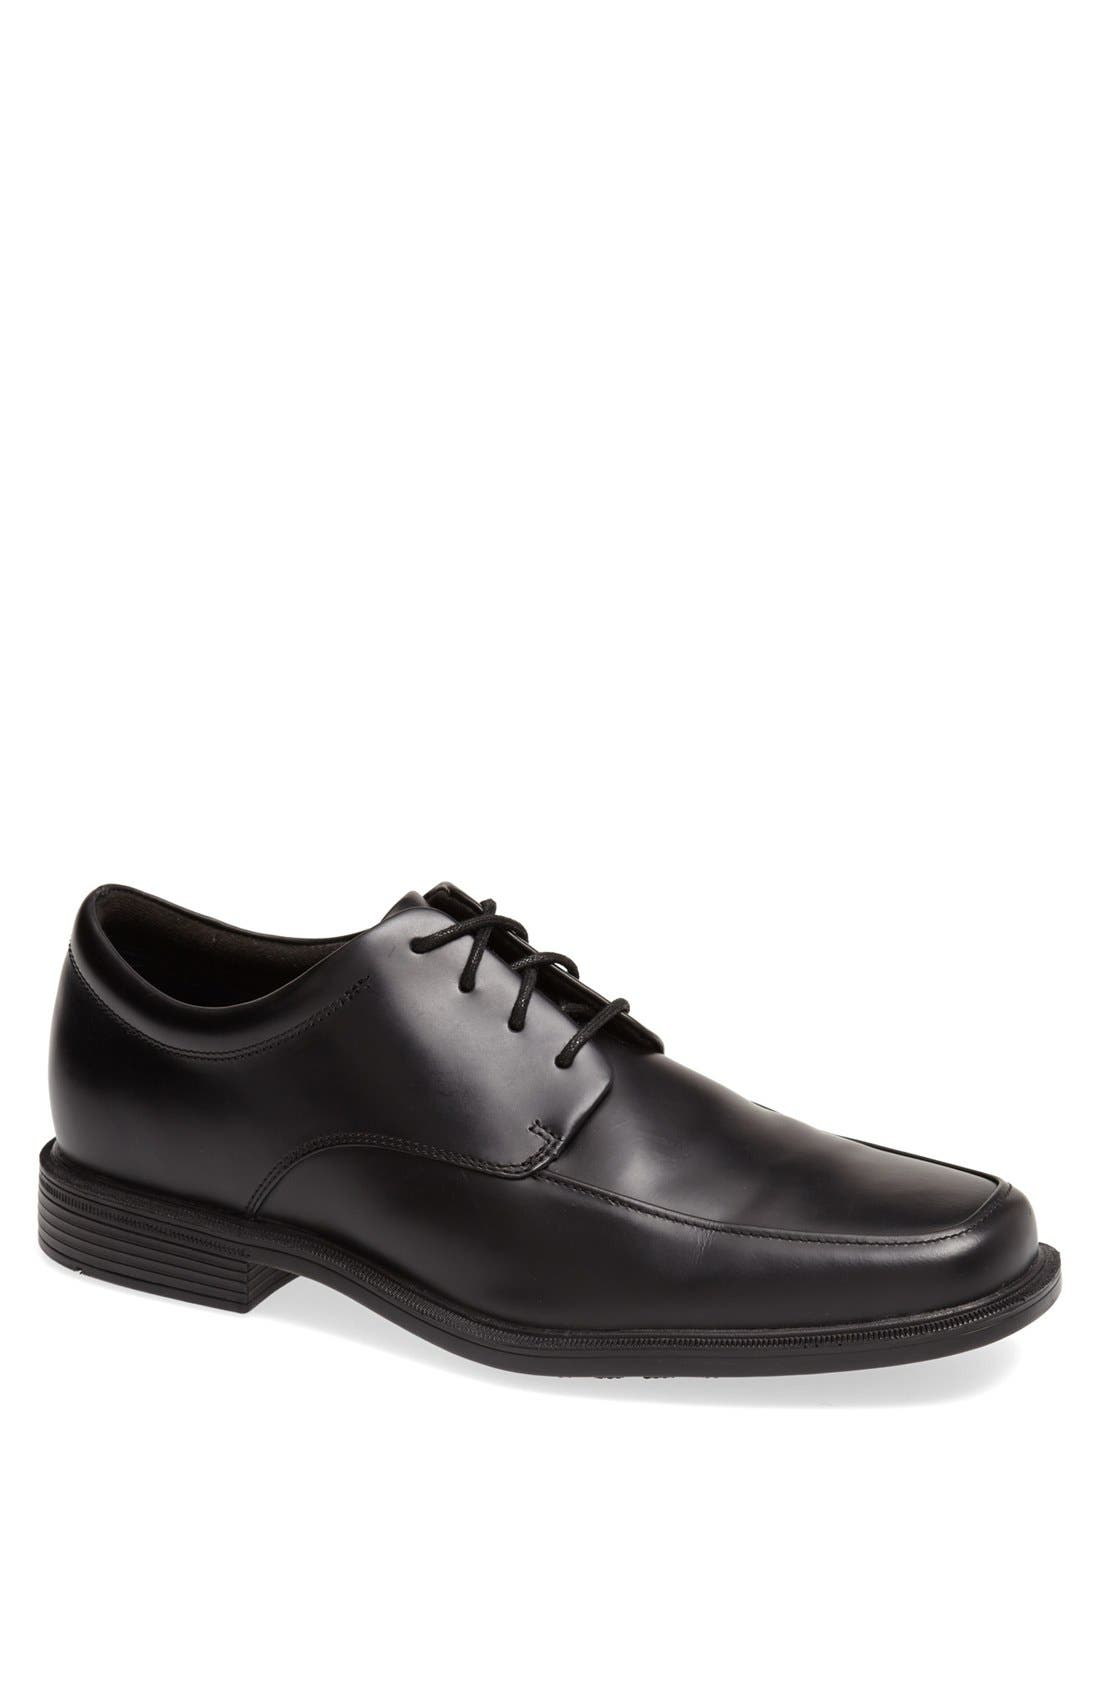 Alternate Image 1 Selected - Rockport 'Evander' Oxford